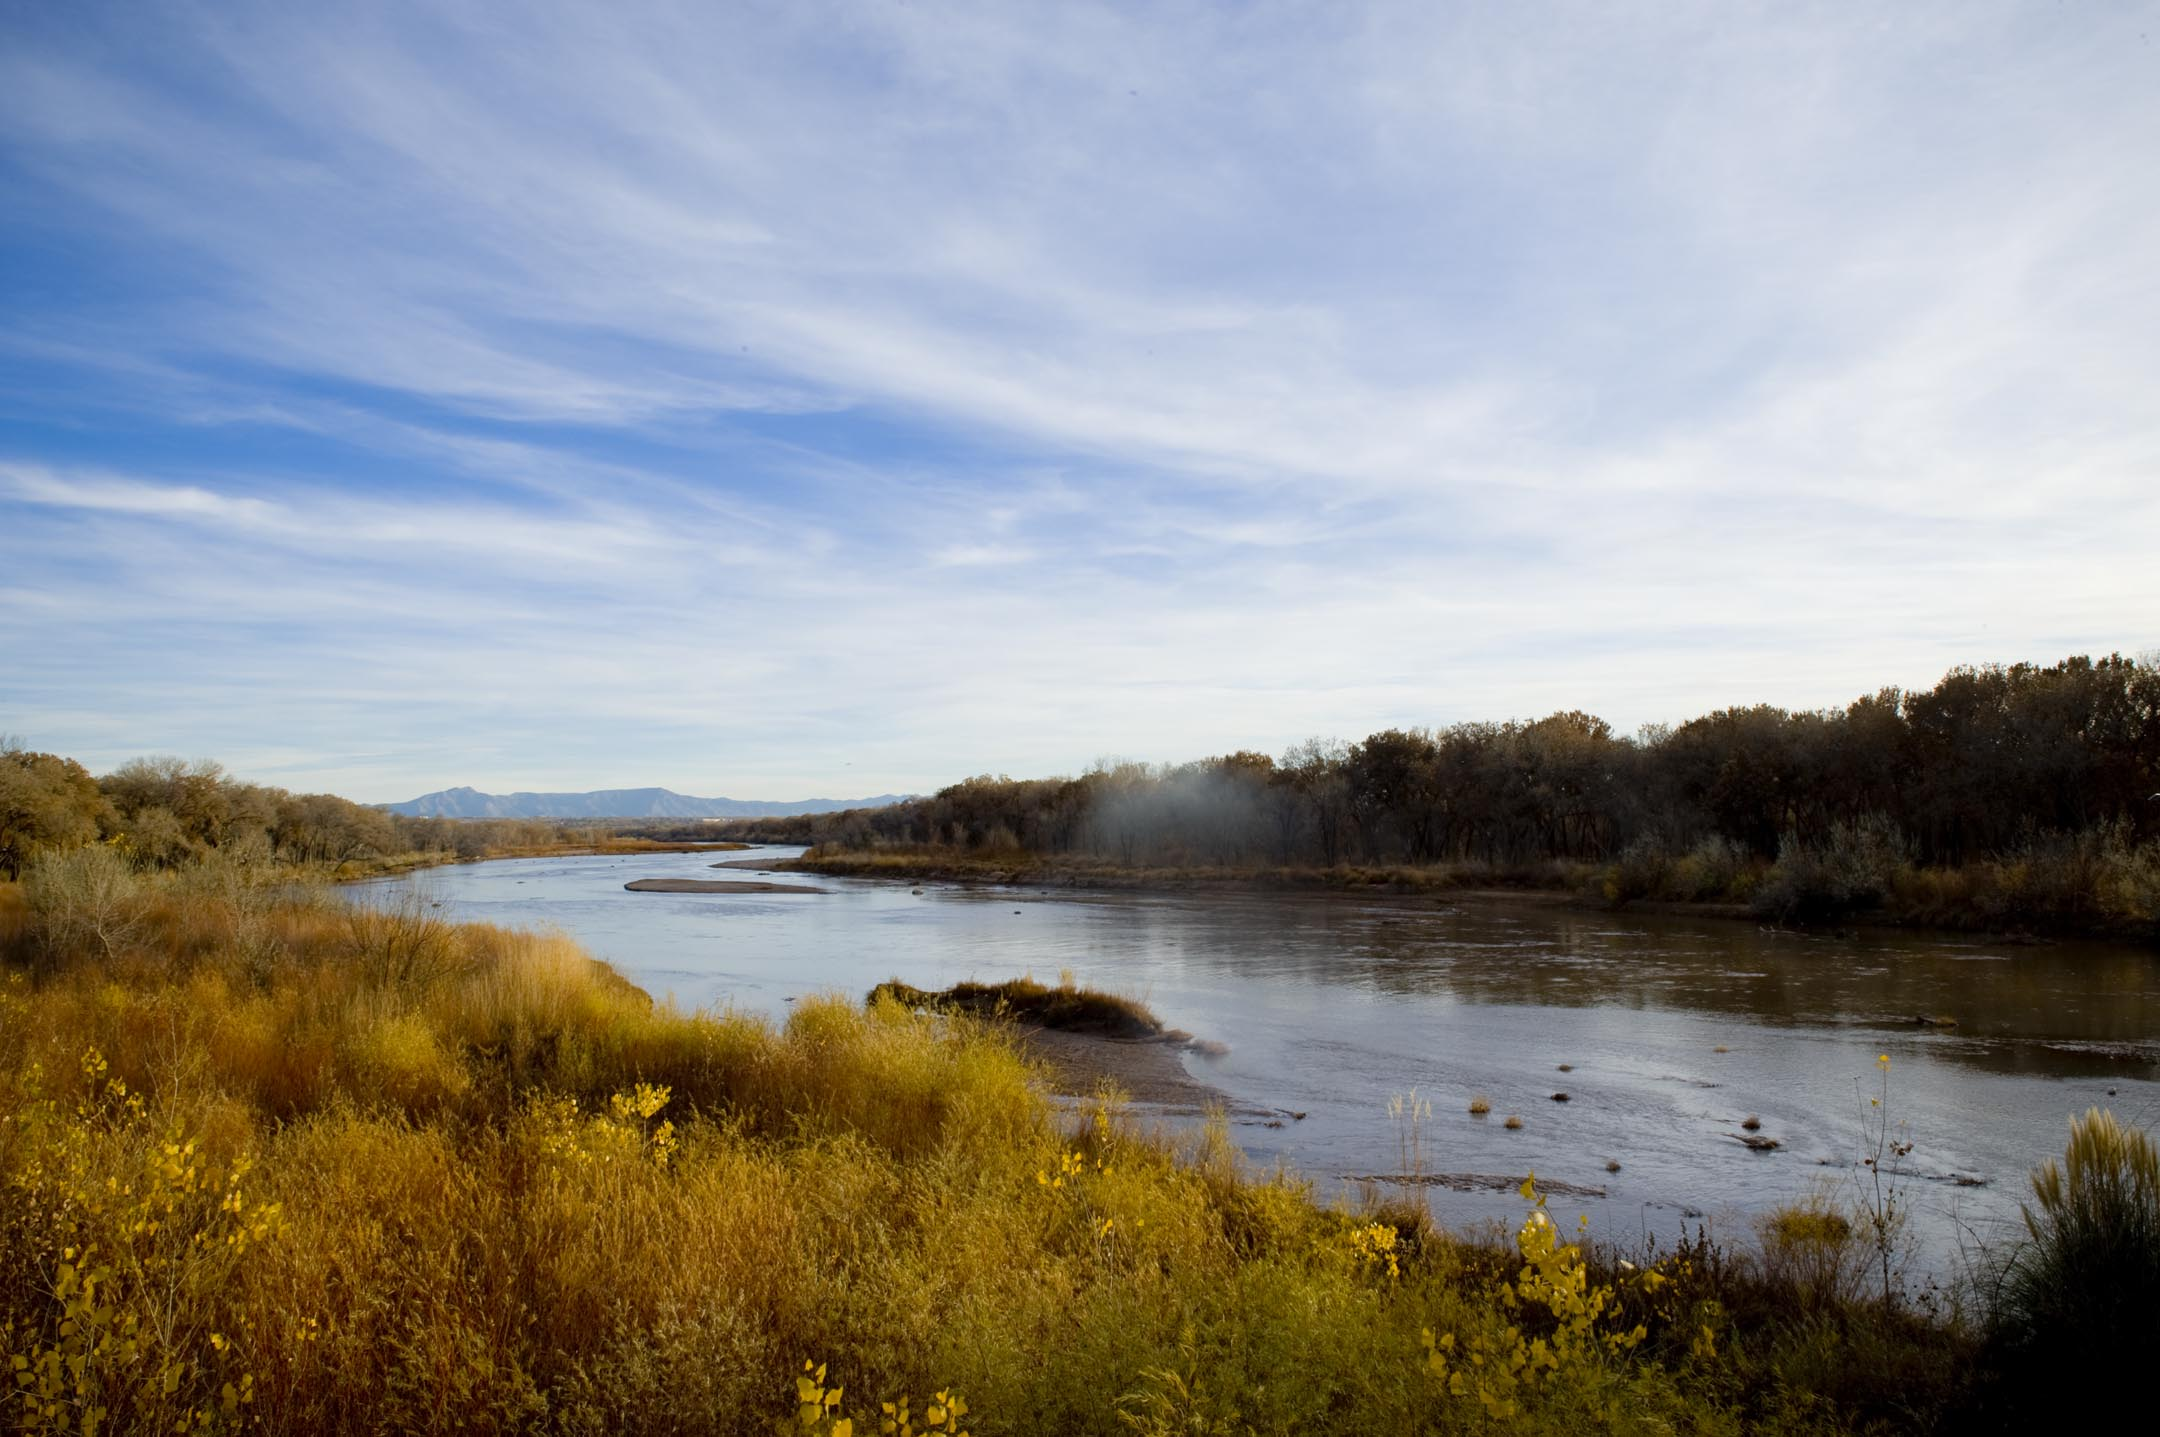 The Rio Grande in New Mexico.